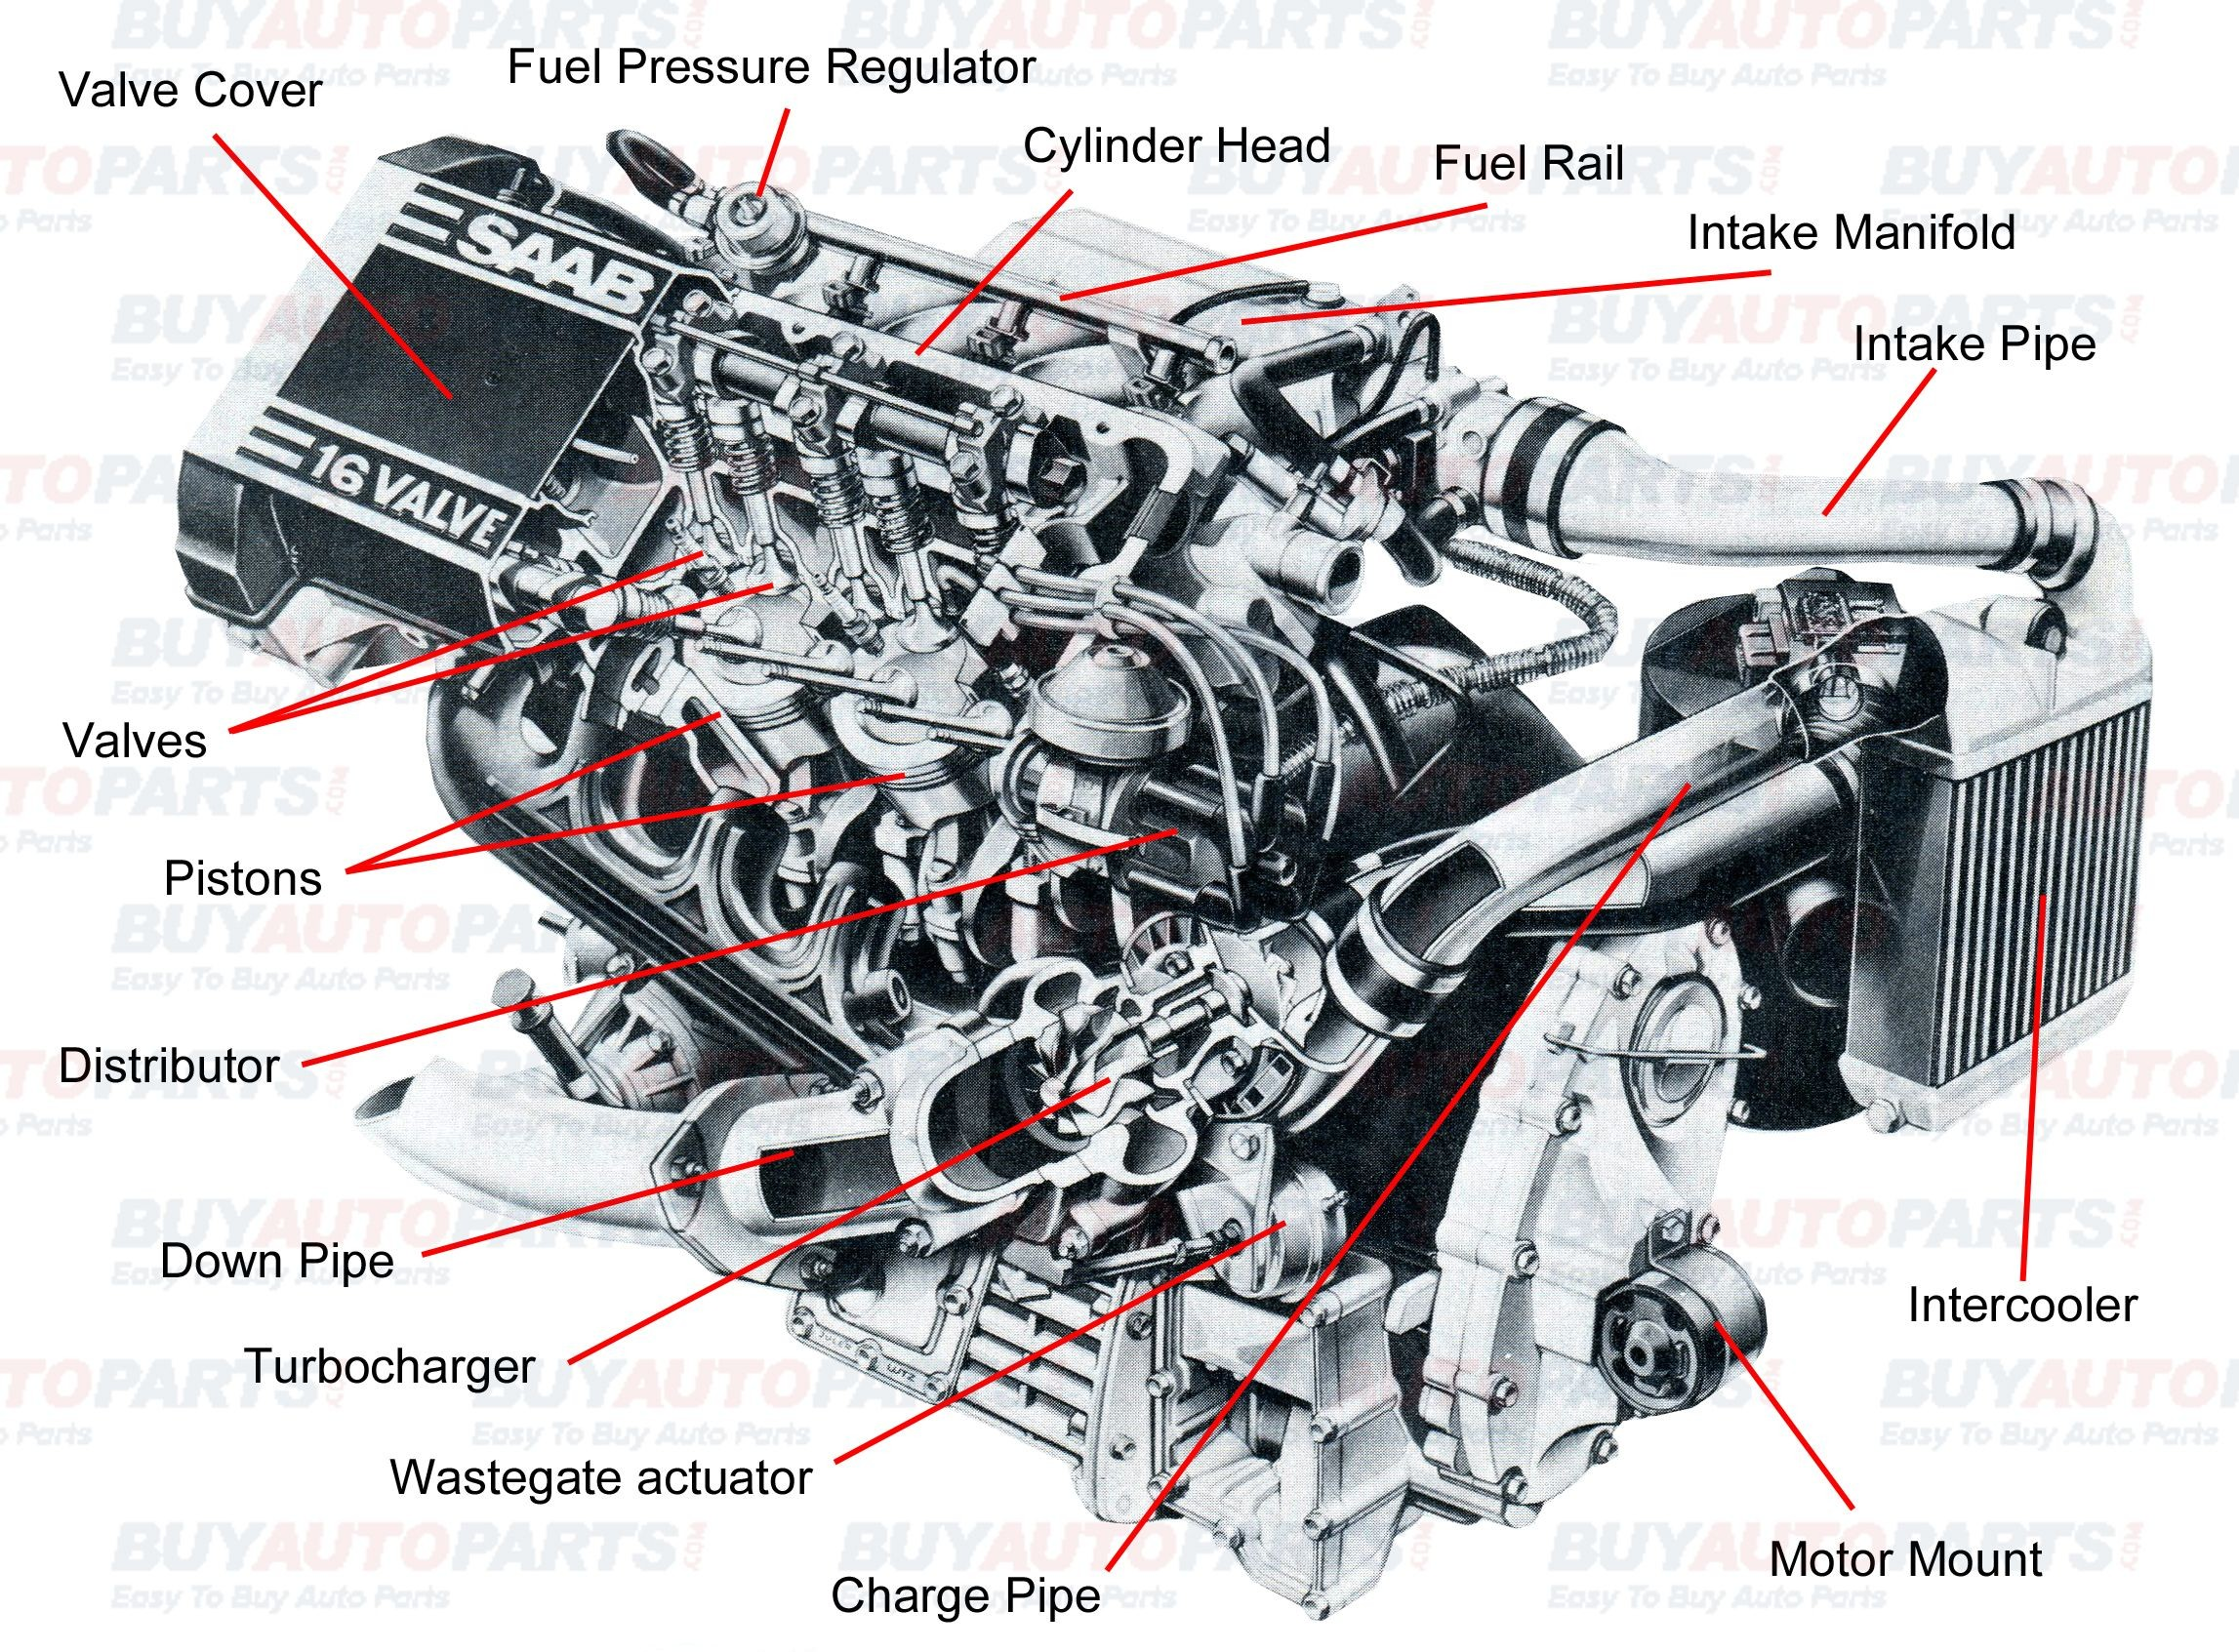 Simple Car Engine Diagram All Internal Bustion Engines Have the Same Basic Ponents the Of Simple Car Engine Diagram